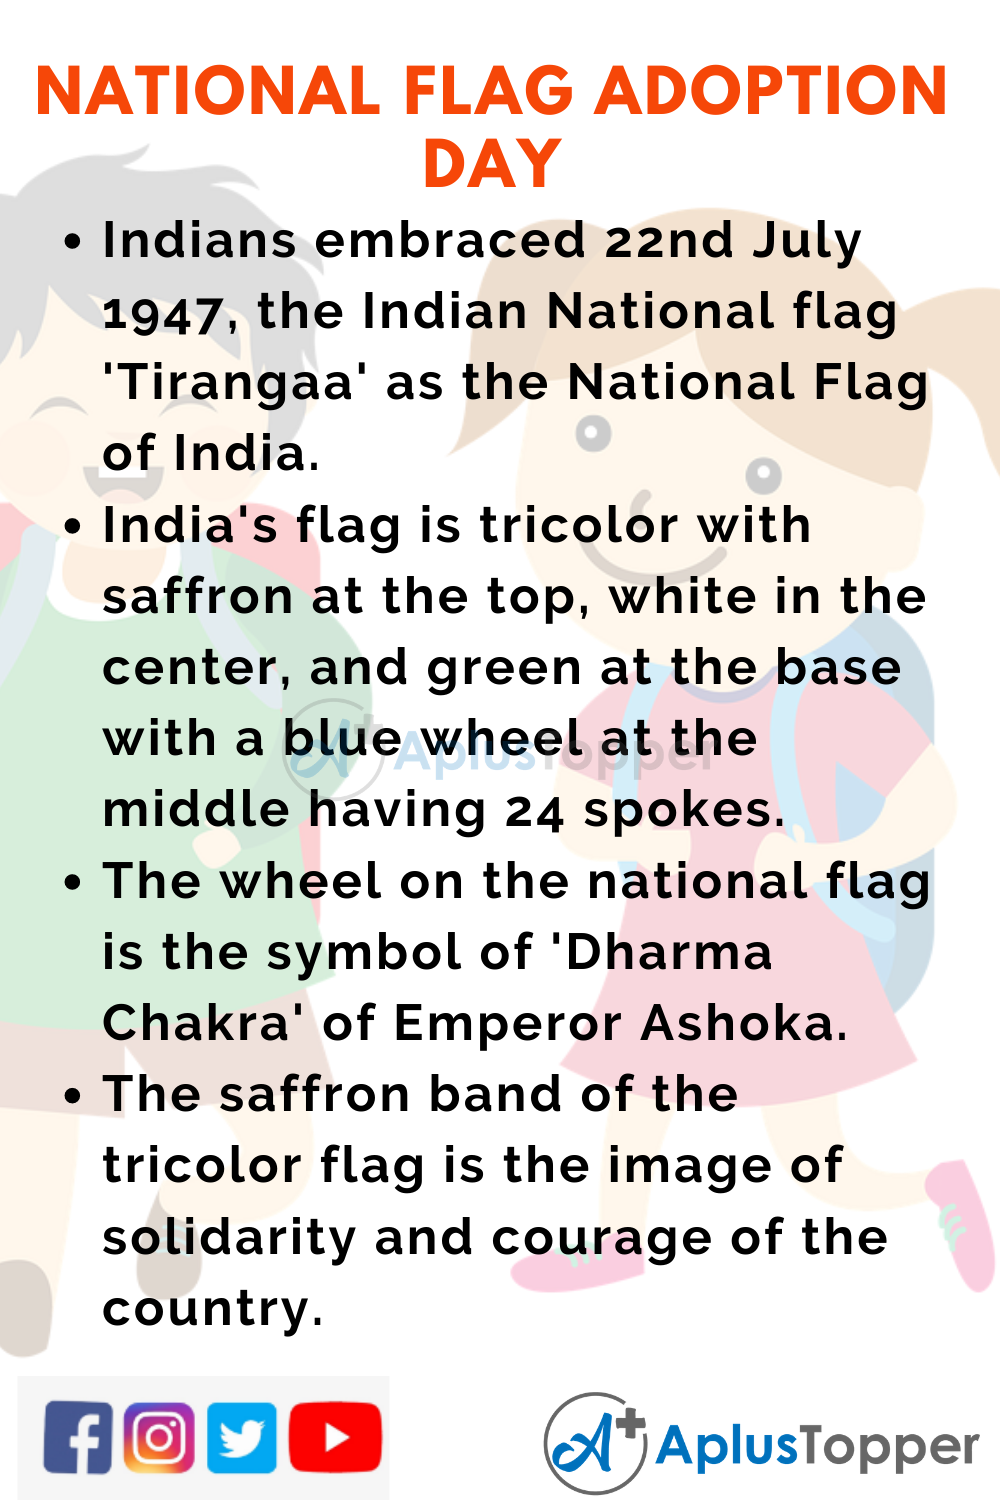 10 Lines On National Flag Adoption Day for Higher Class Students